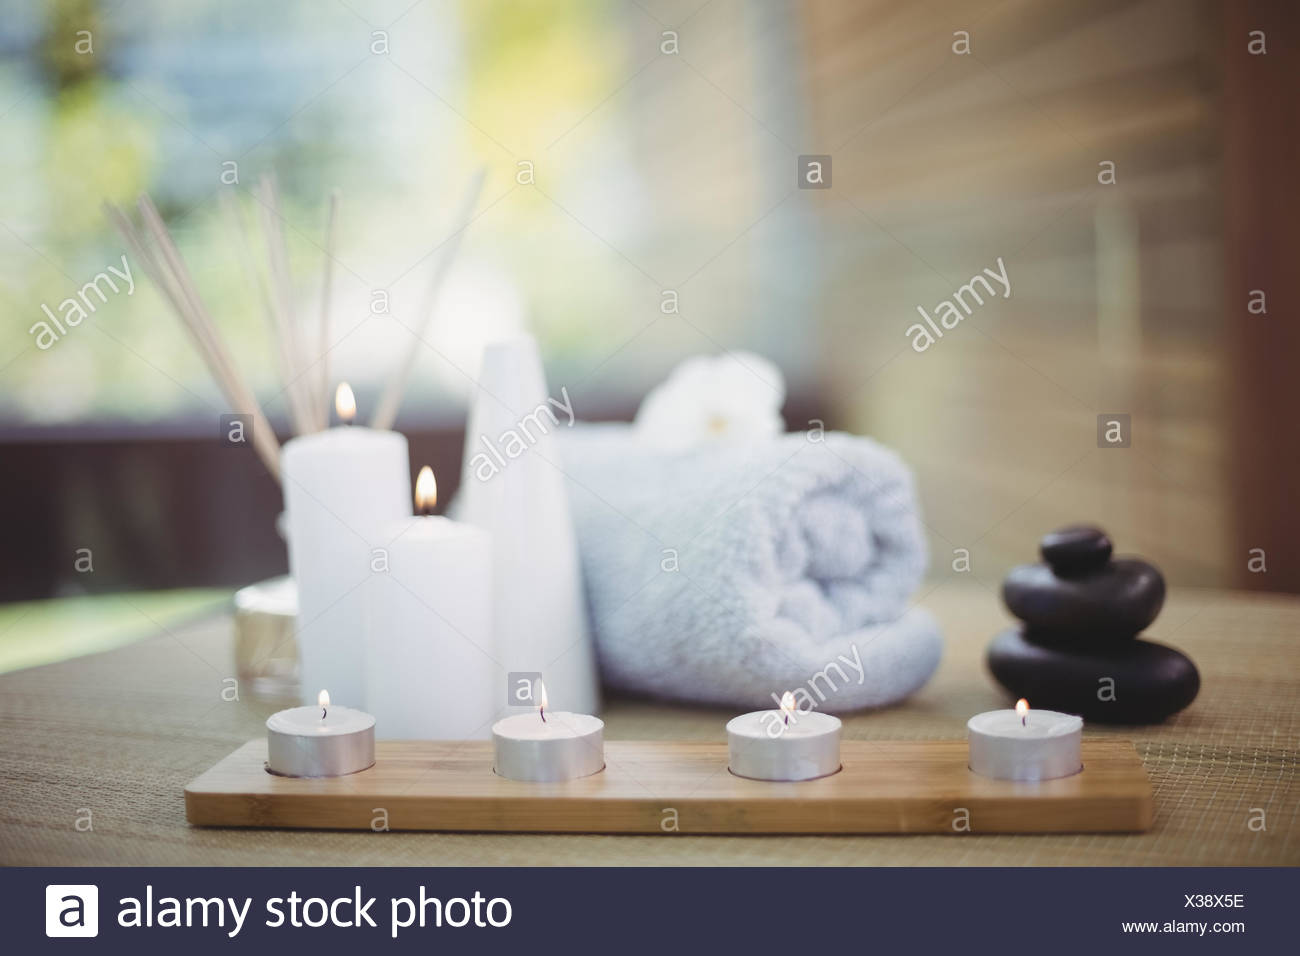 Tray of beauty therapy items - Stock Image